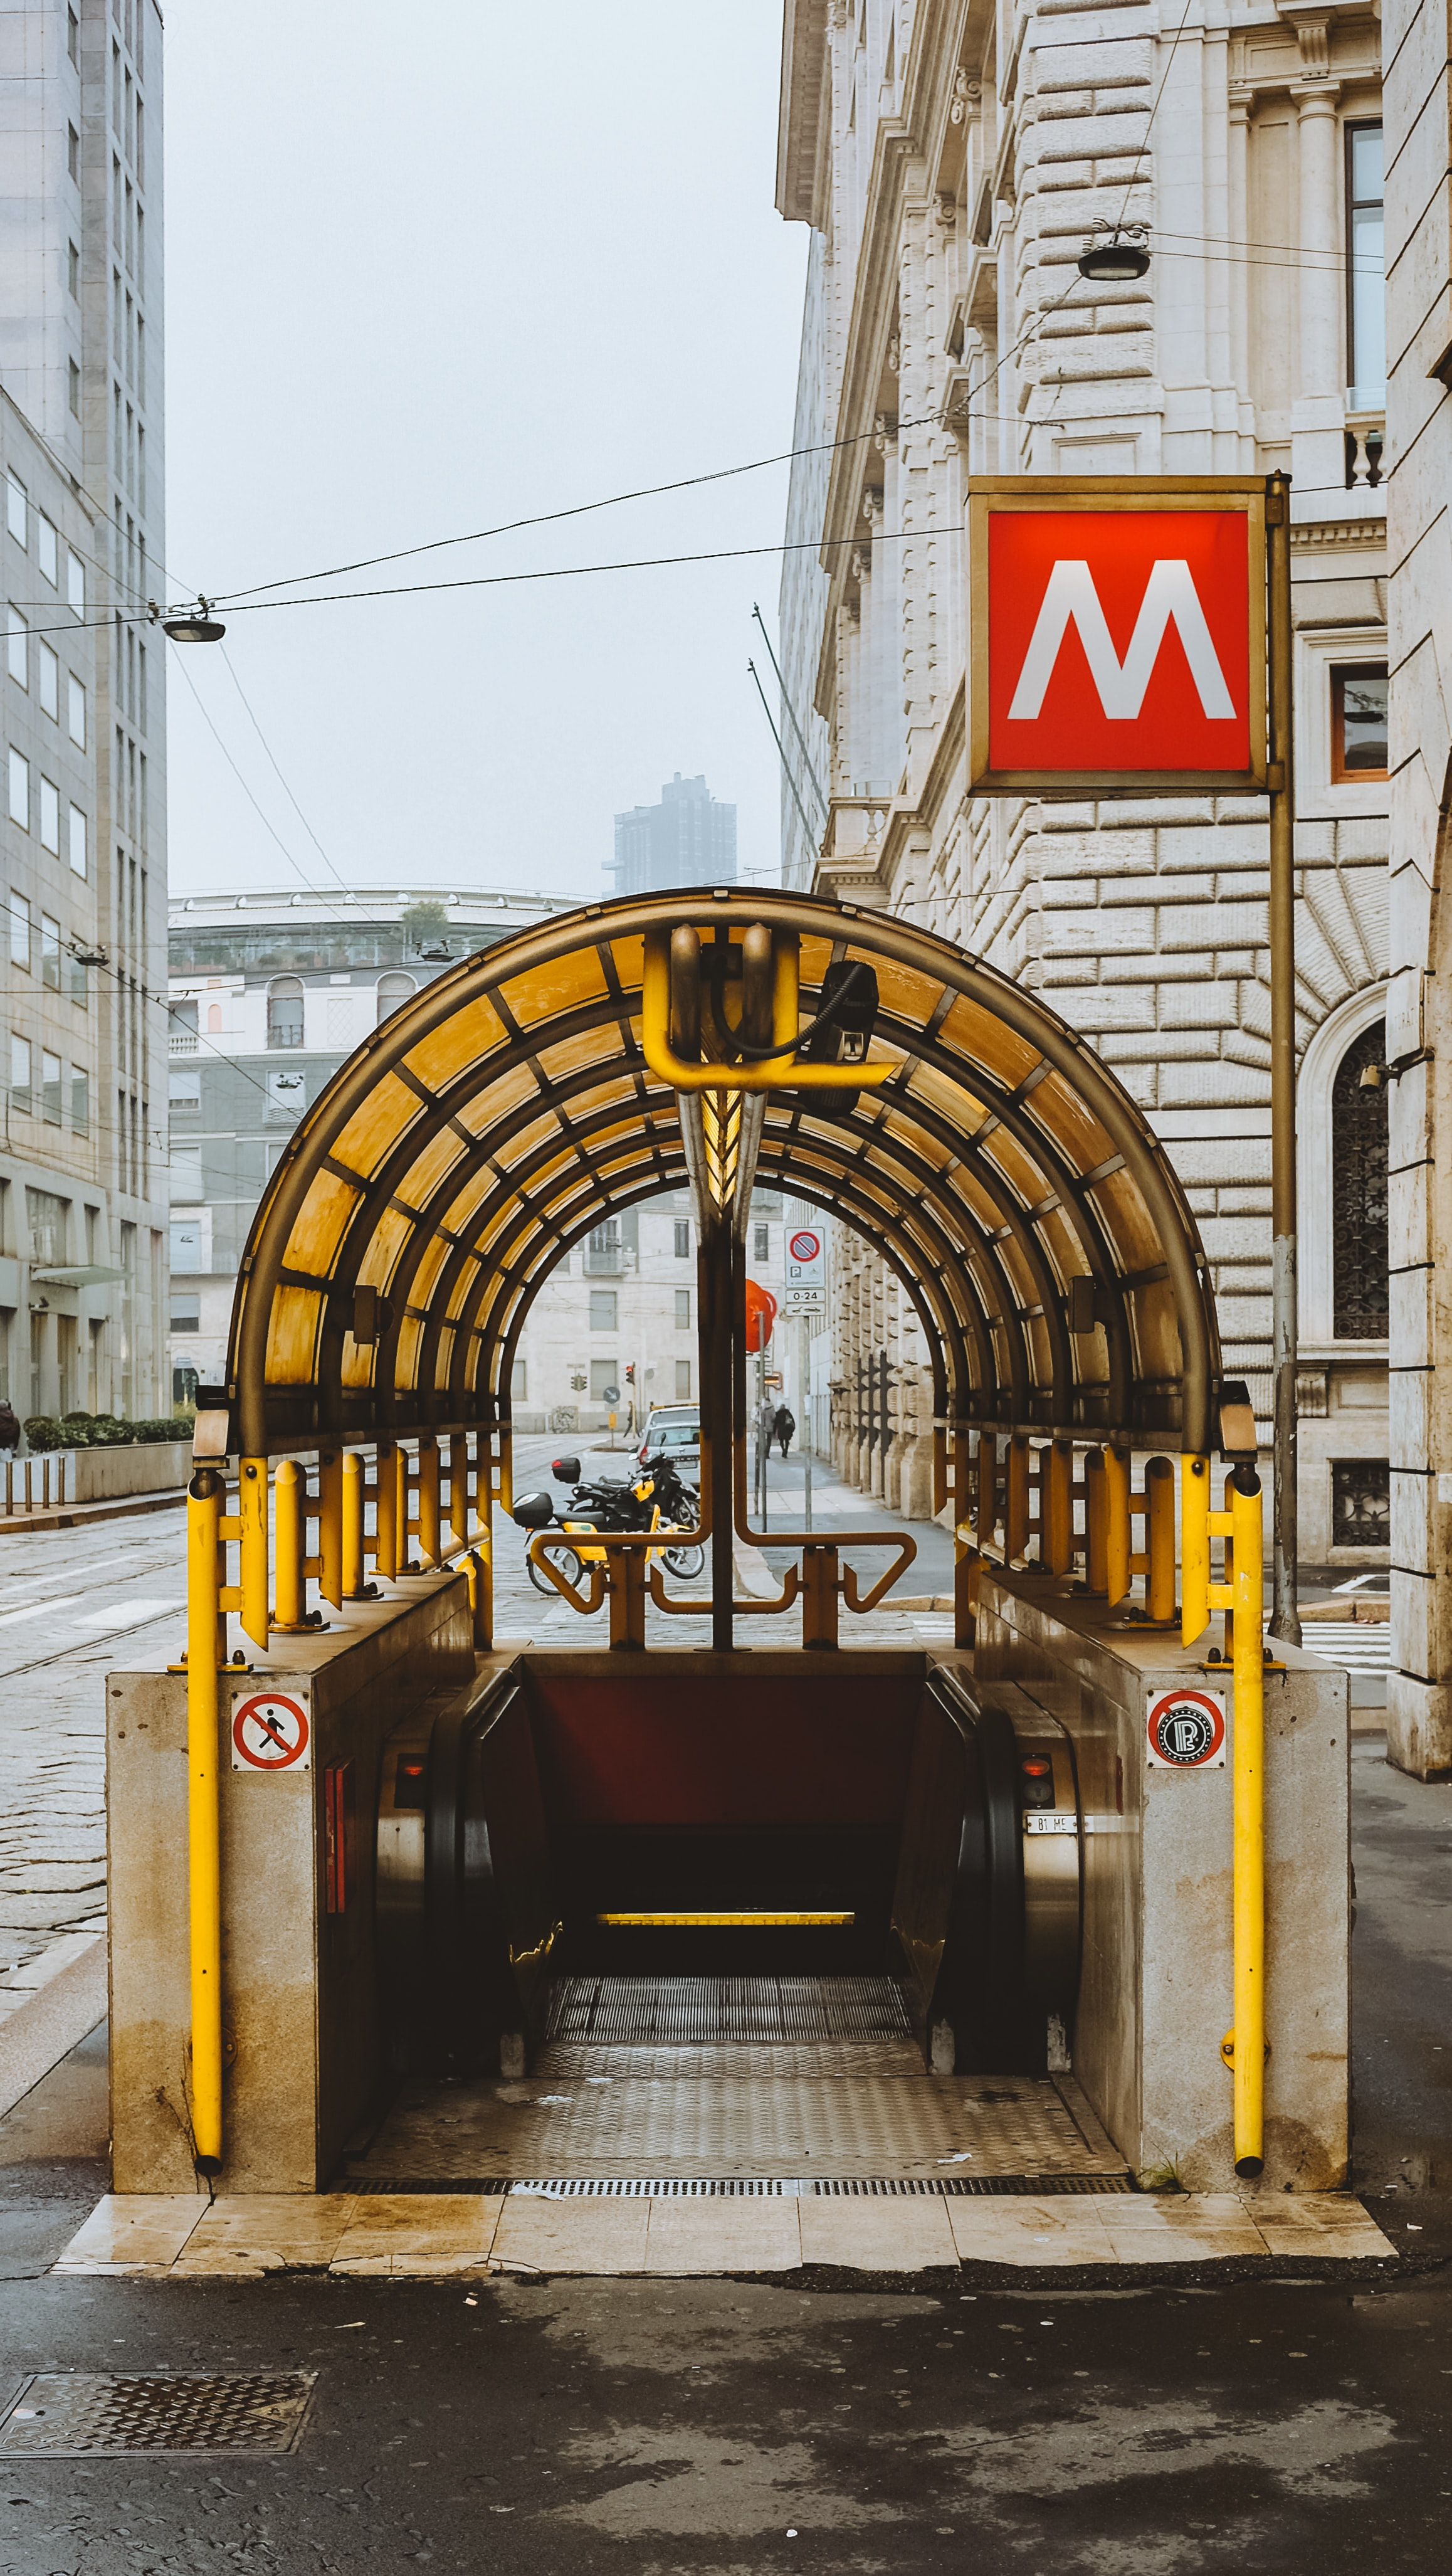 subway station entrance in city during daytime